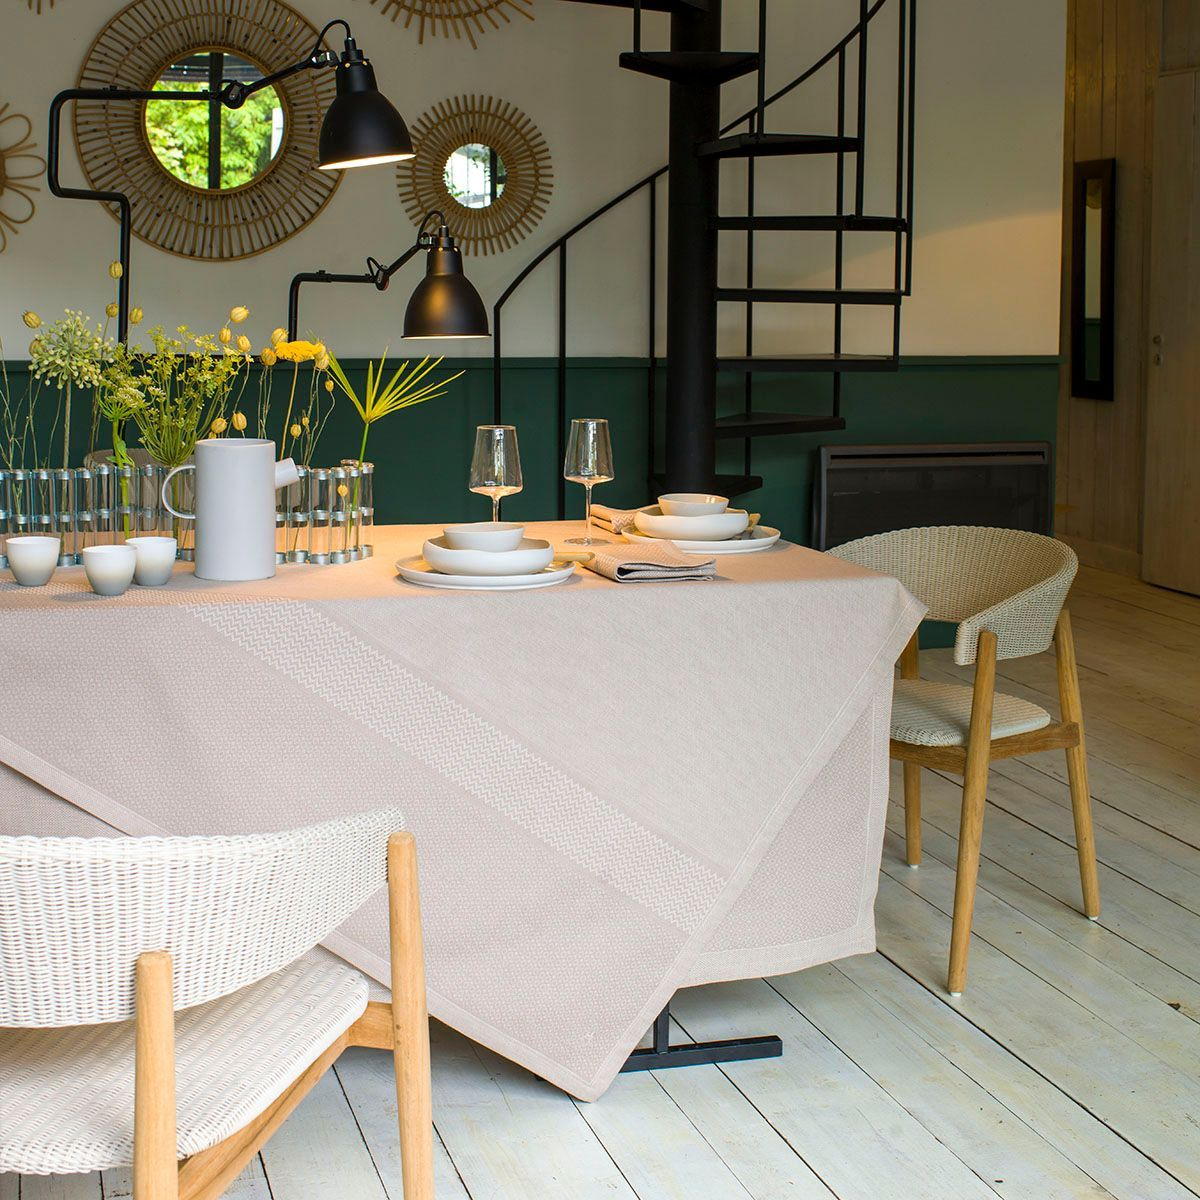 Slow Life Sesame Table Linens by Le Jacquard Français | Fig Linens